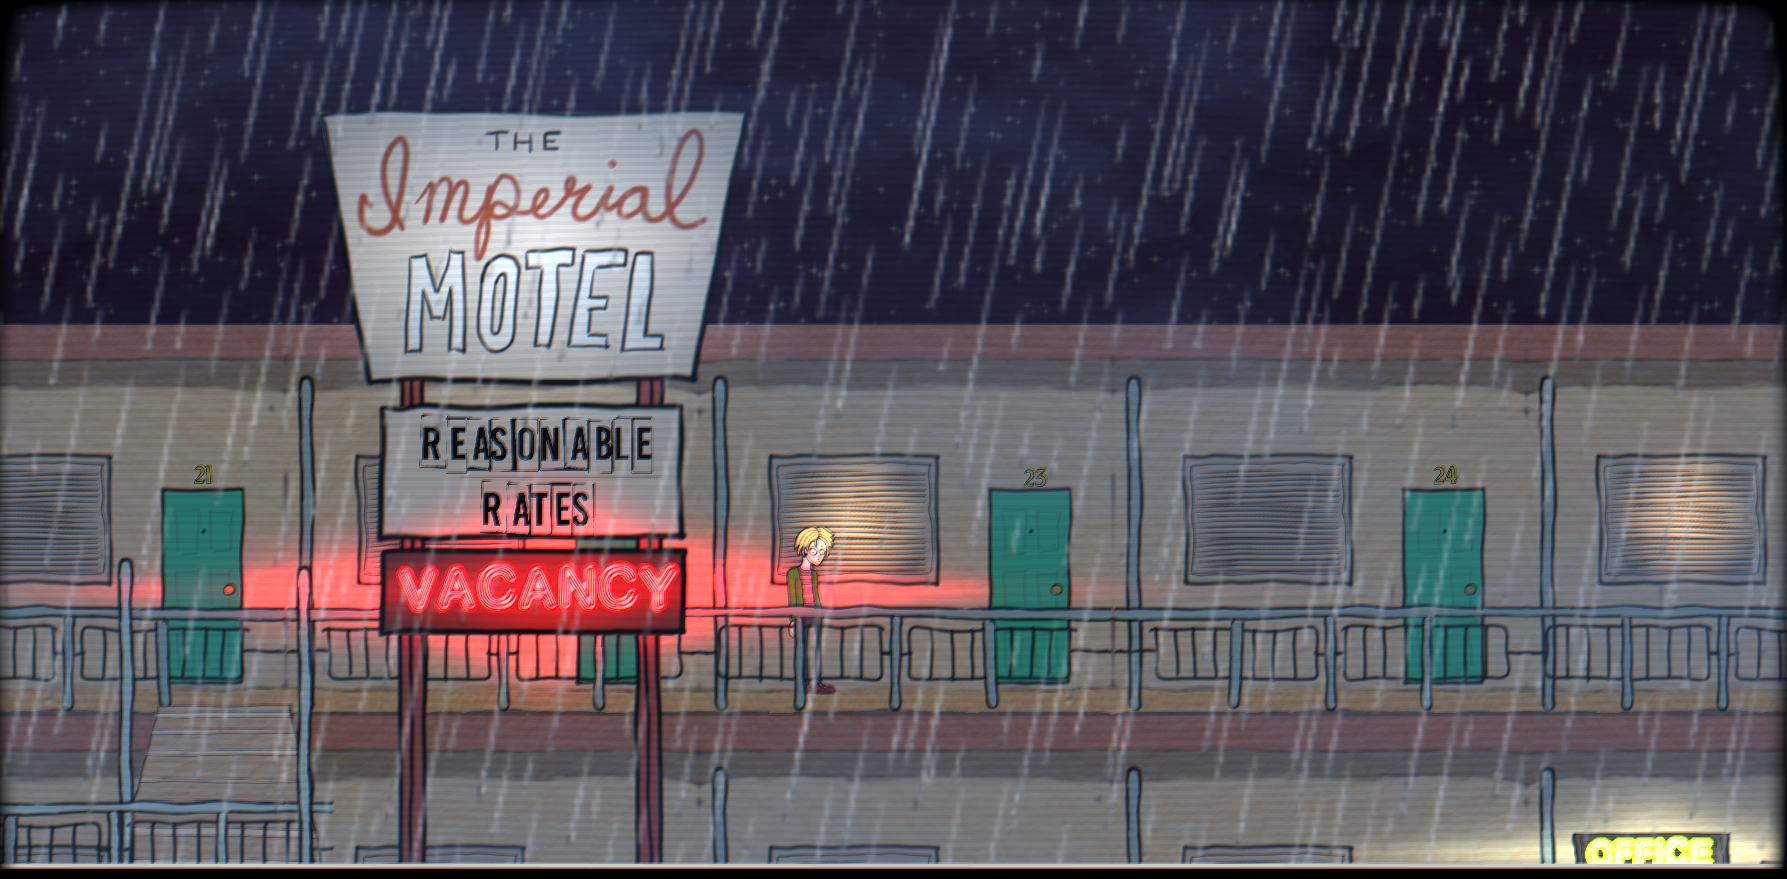 One Night at the Imperial Motel